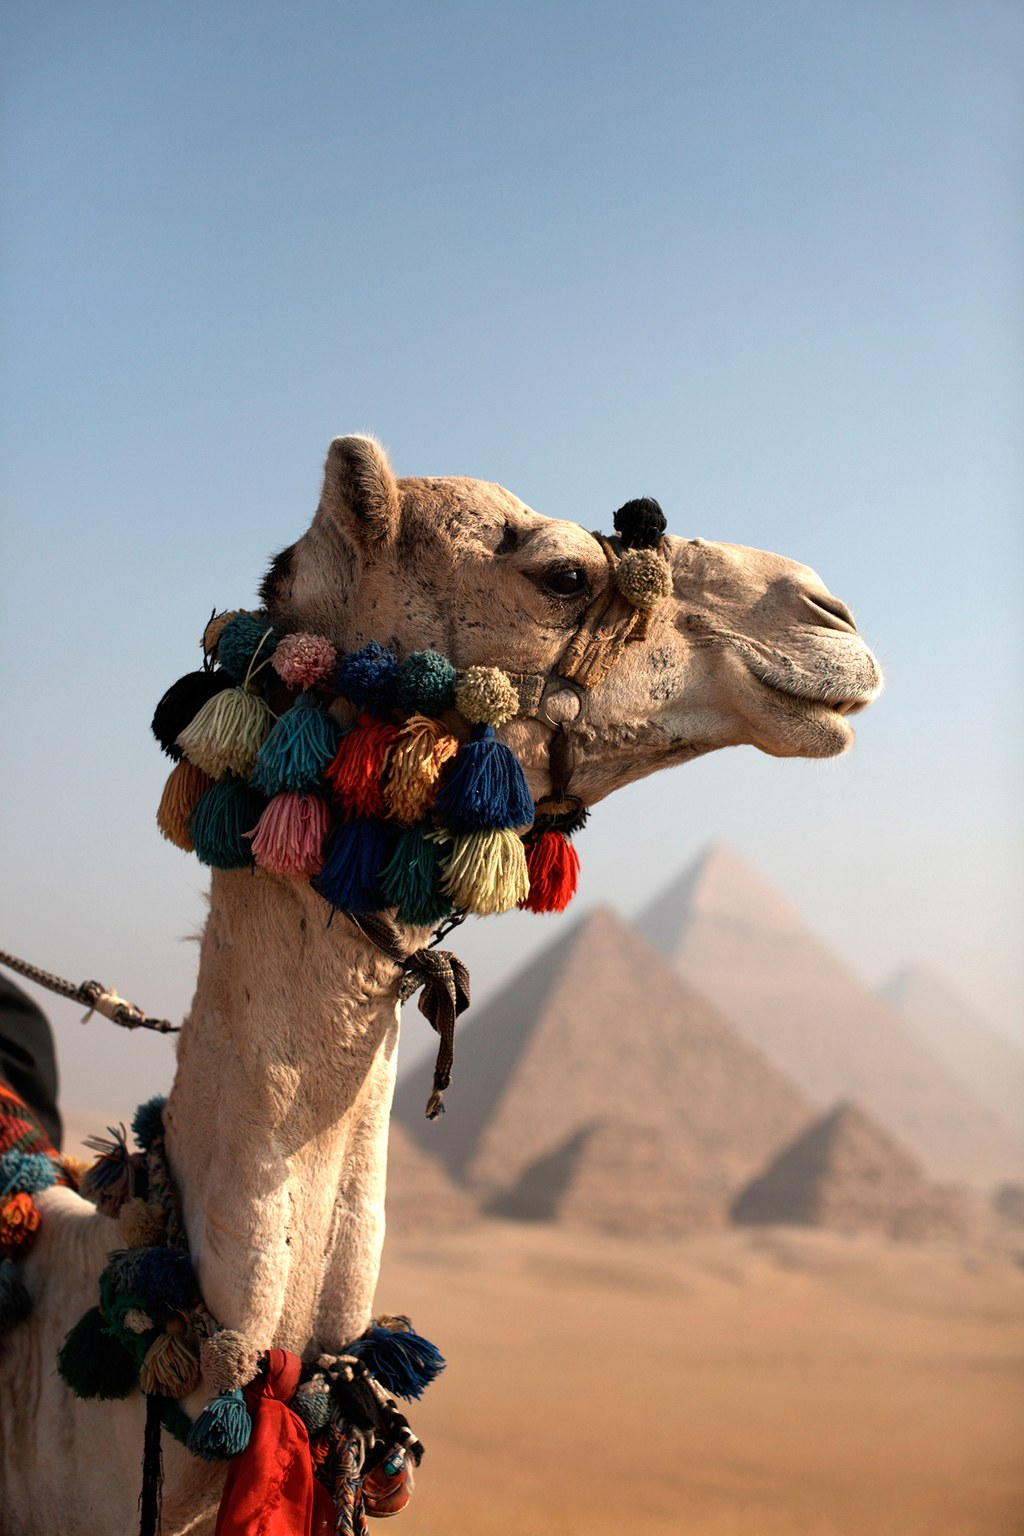 A camel in front of the Pyramids of Giza in Egypt  / Photo: Alamy